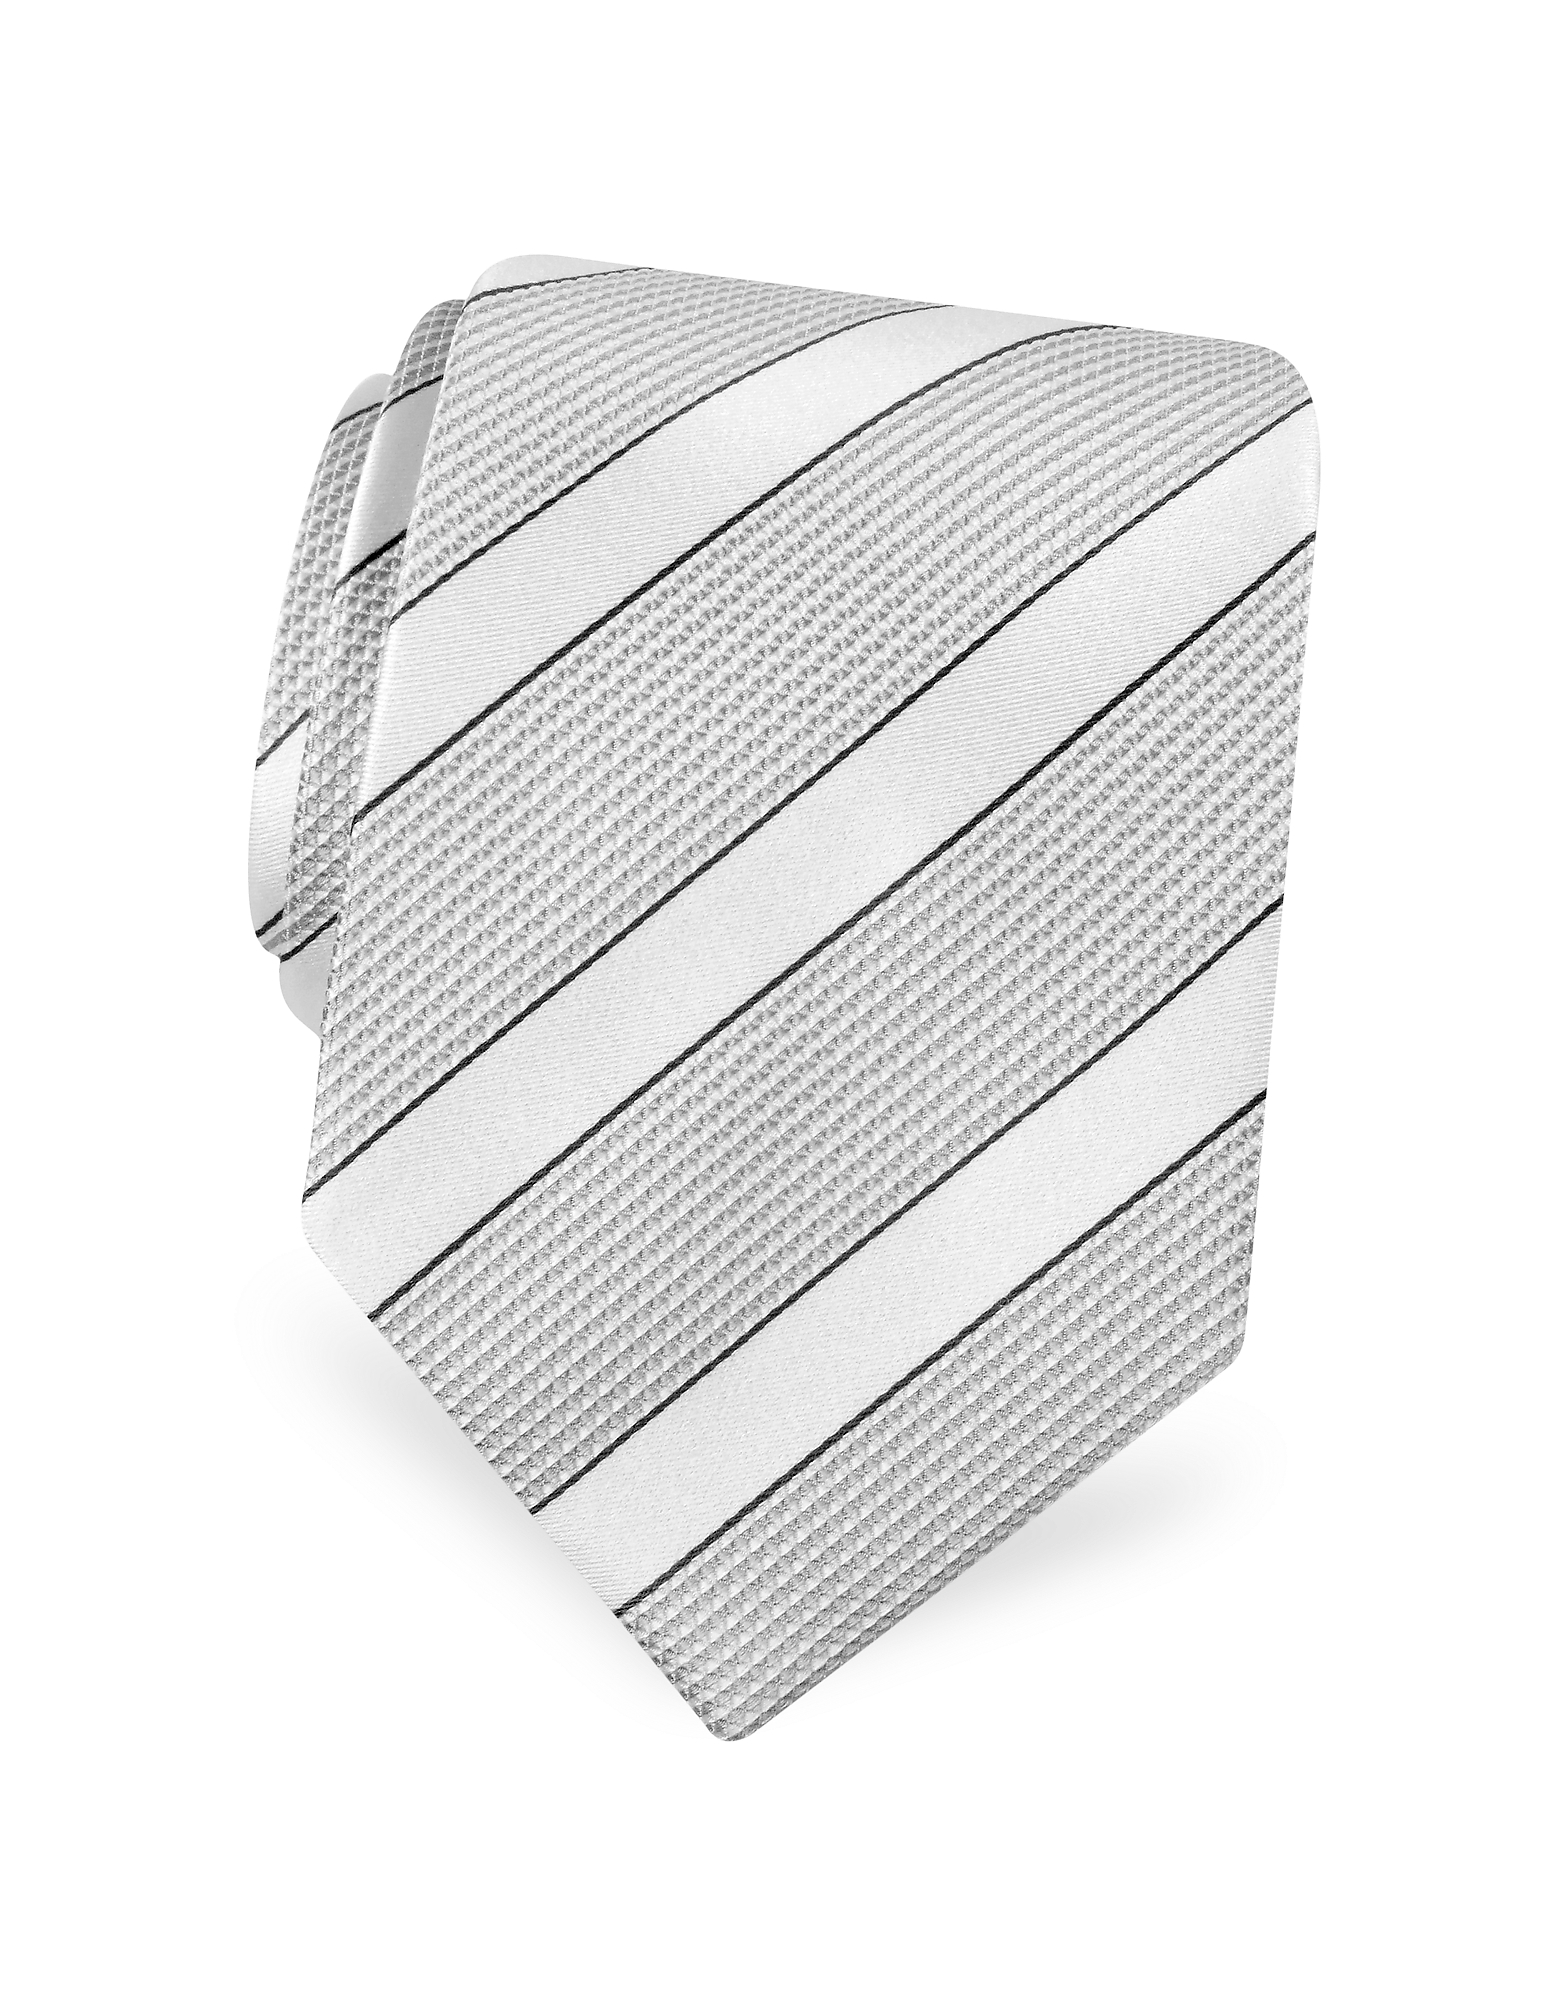 Forzieri Ties, Gold Line- Silver and Ivory Bands Woven Silk Tie